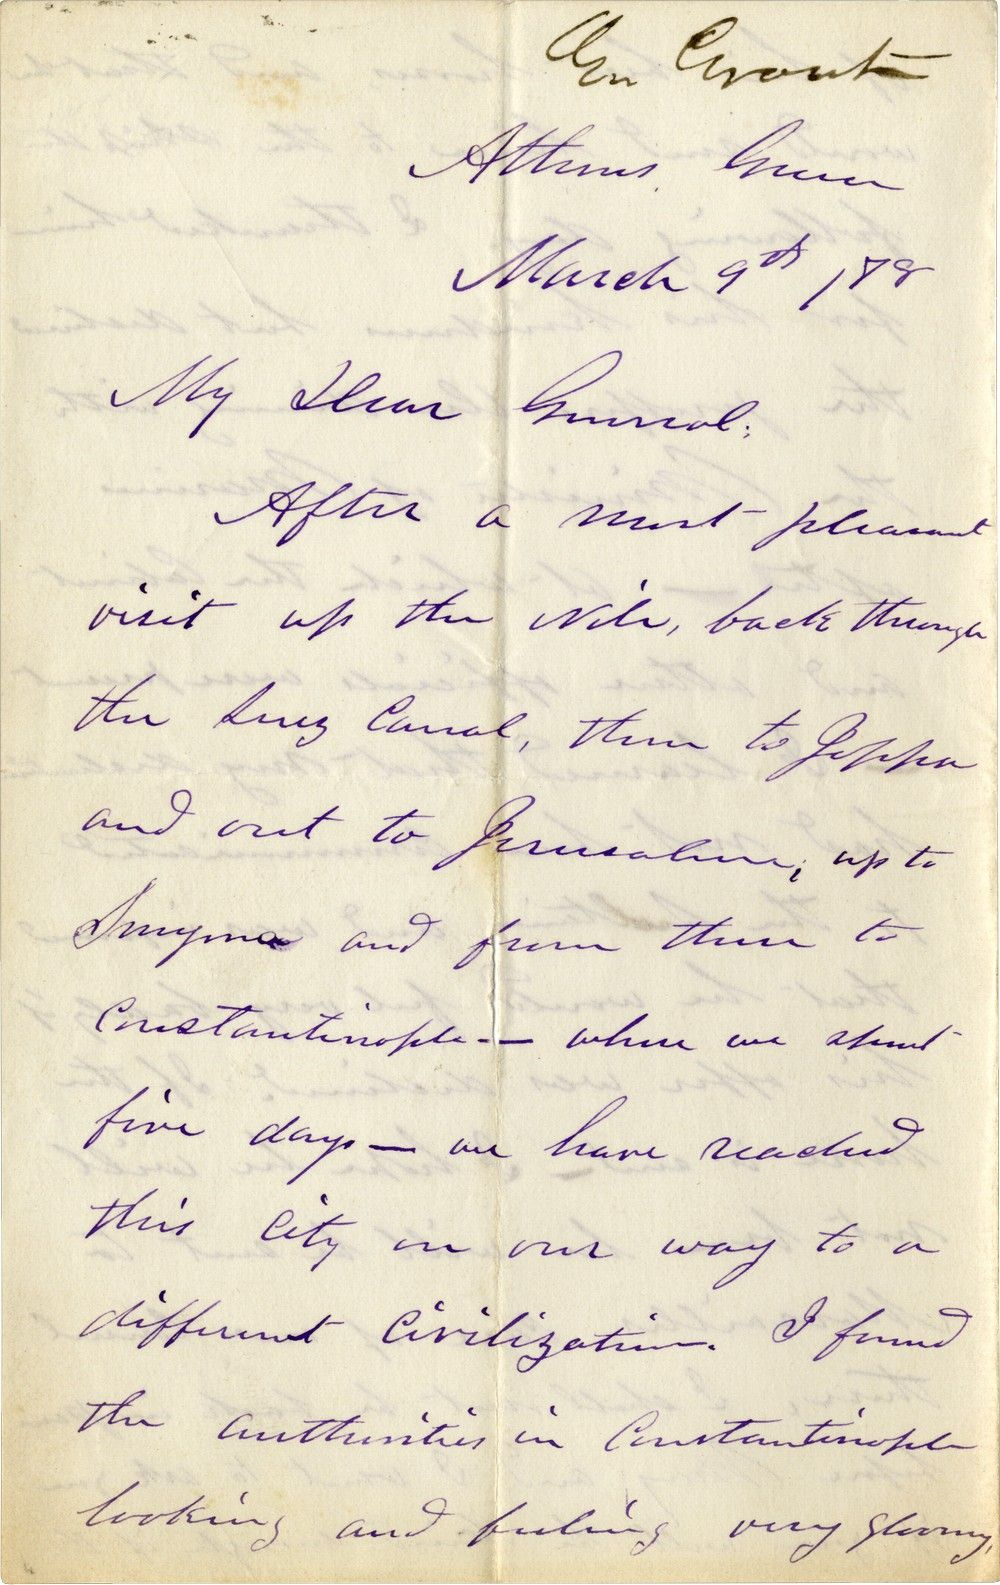 Ulysses S. Grant Comments on the Refugees Who Have Fled to Constantinople